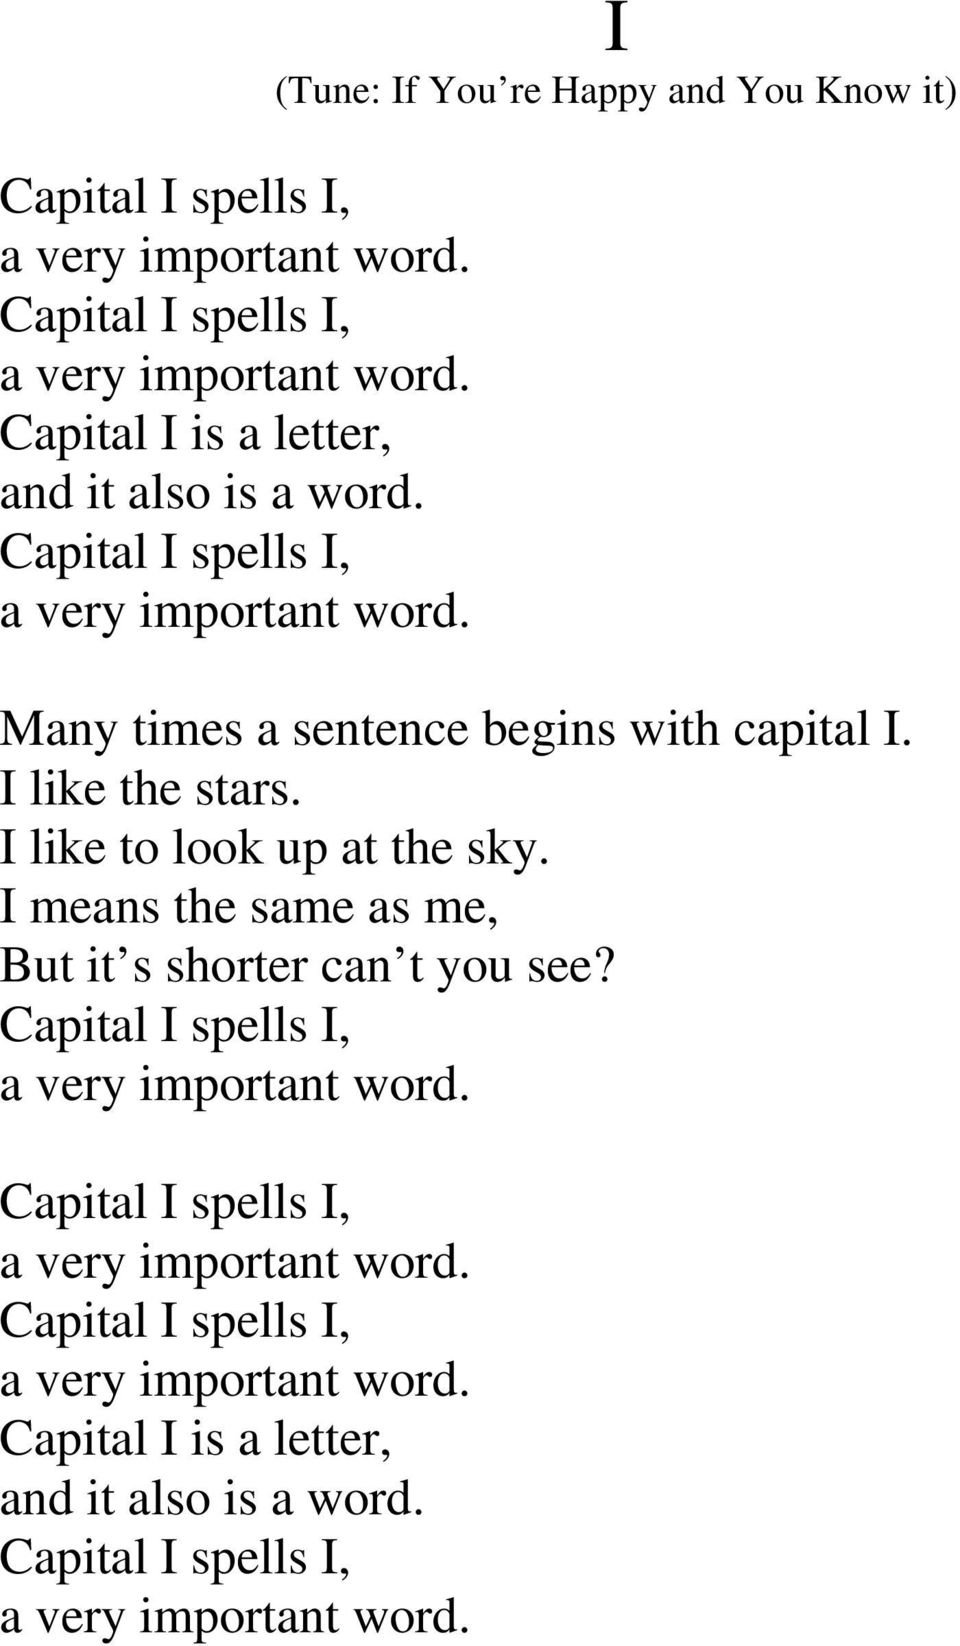 I like the stars. I like to look up at the sky. I means the same as me, But it s shorter can t you see? Capital I spells I, a very important word.